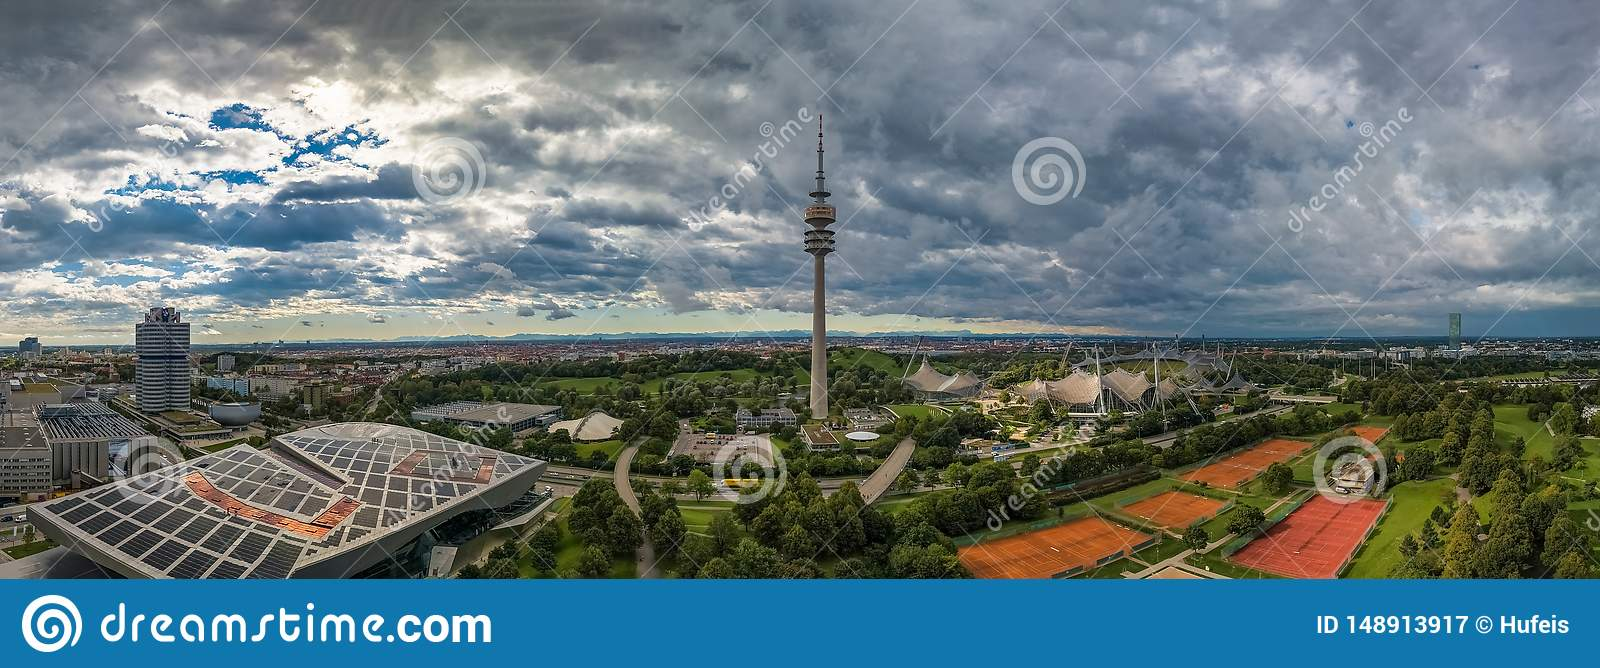 Aerial view of Olympiapark and the Olympiaturm Olympic Tower Munich.